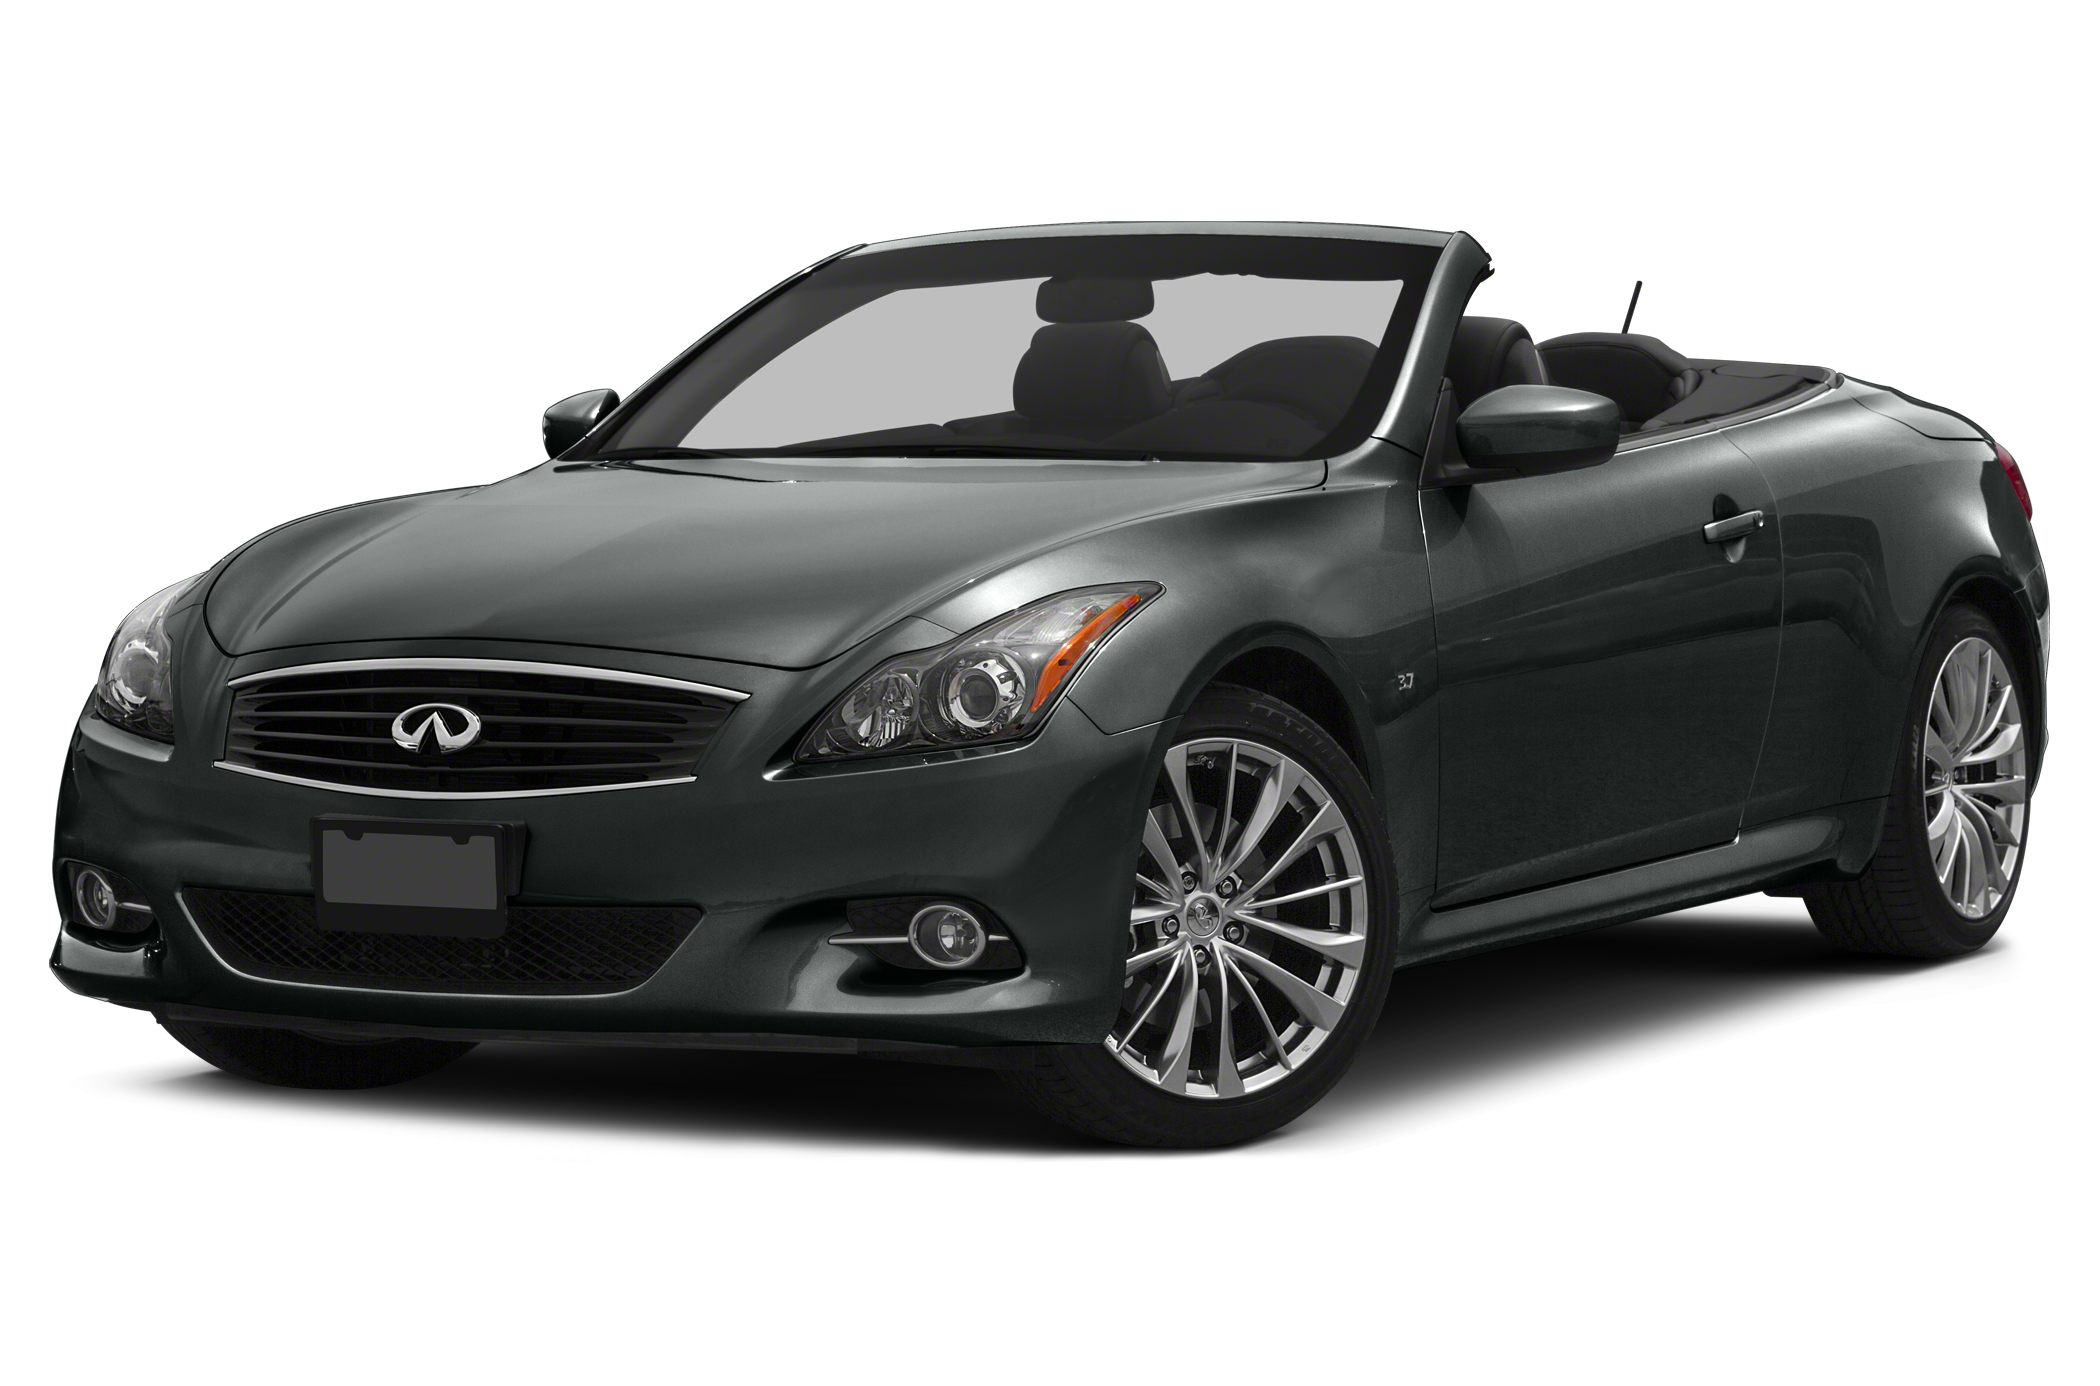 2015 Infiniti Q60 Base Convertible for sale in Charleston for $57,110 with 17 miles